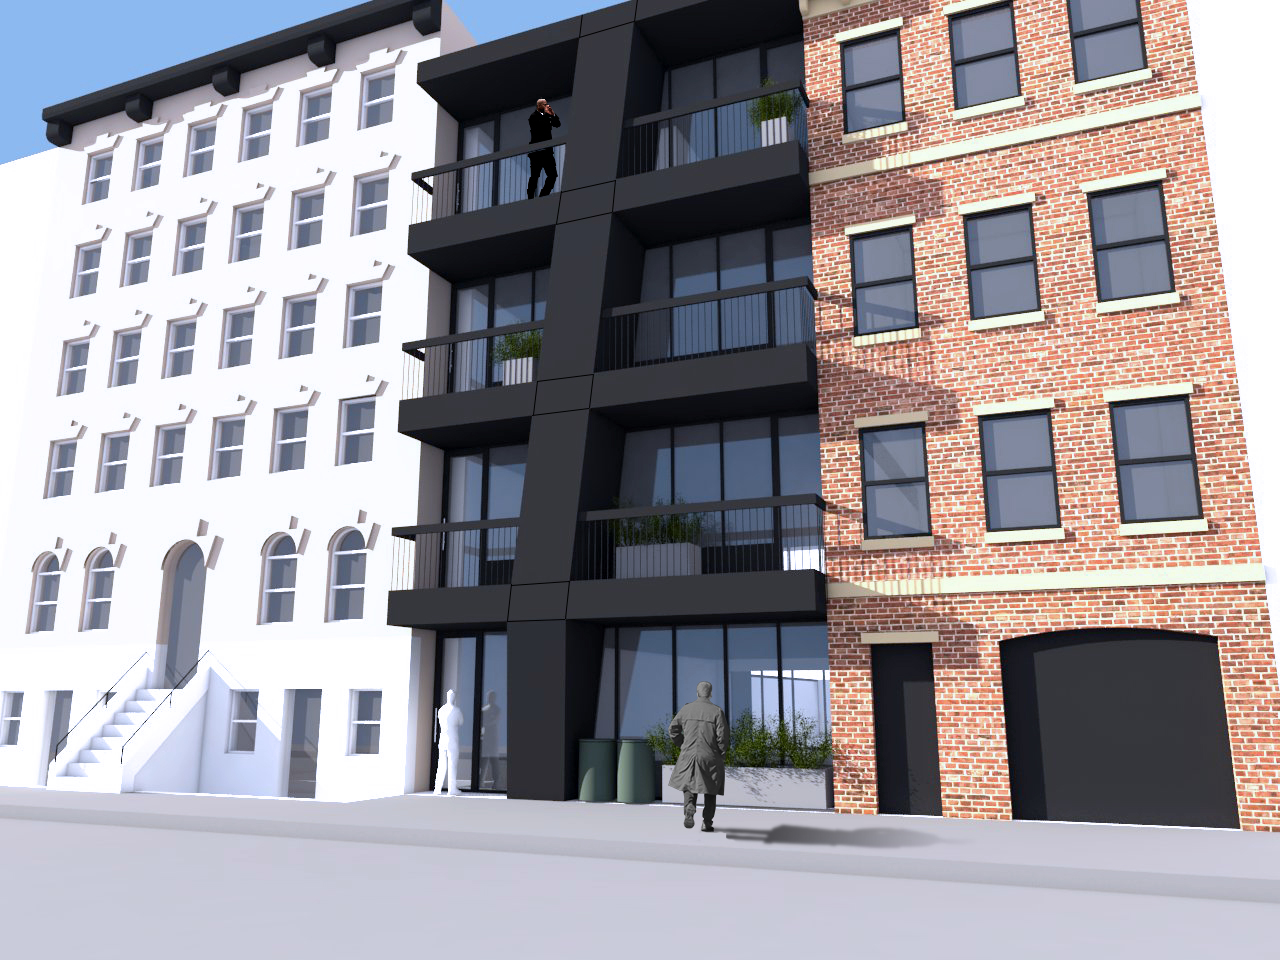 South 1st Street  - New Building Scheme